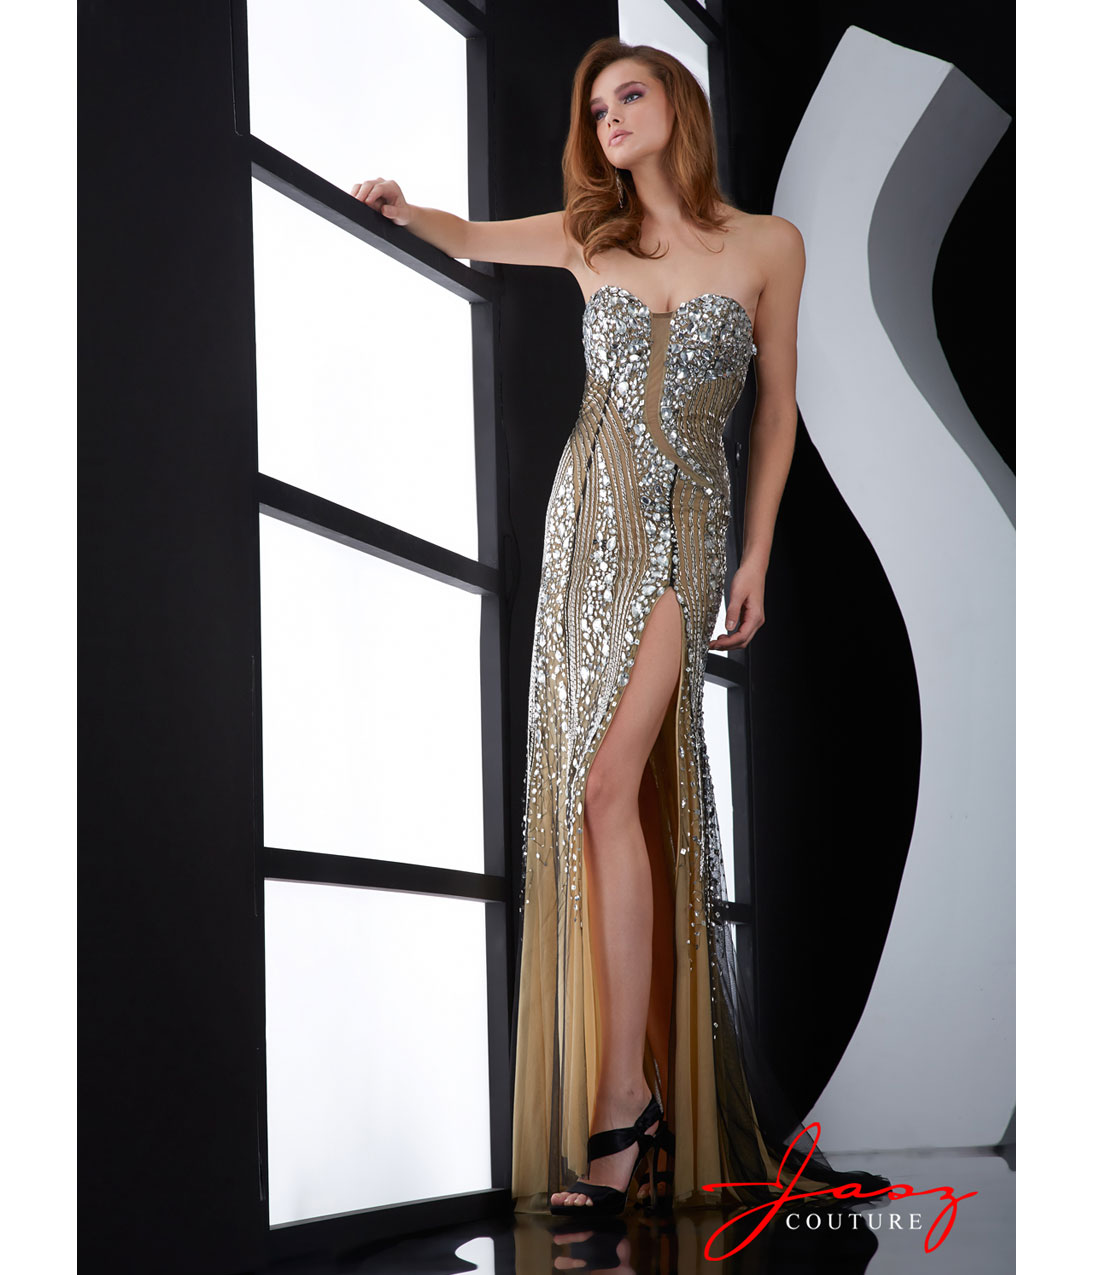 Jasz Couture 2014 Prom Dresses - Black & Silver Beaded Strapless ...